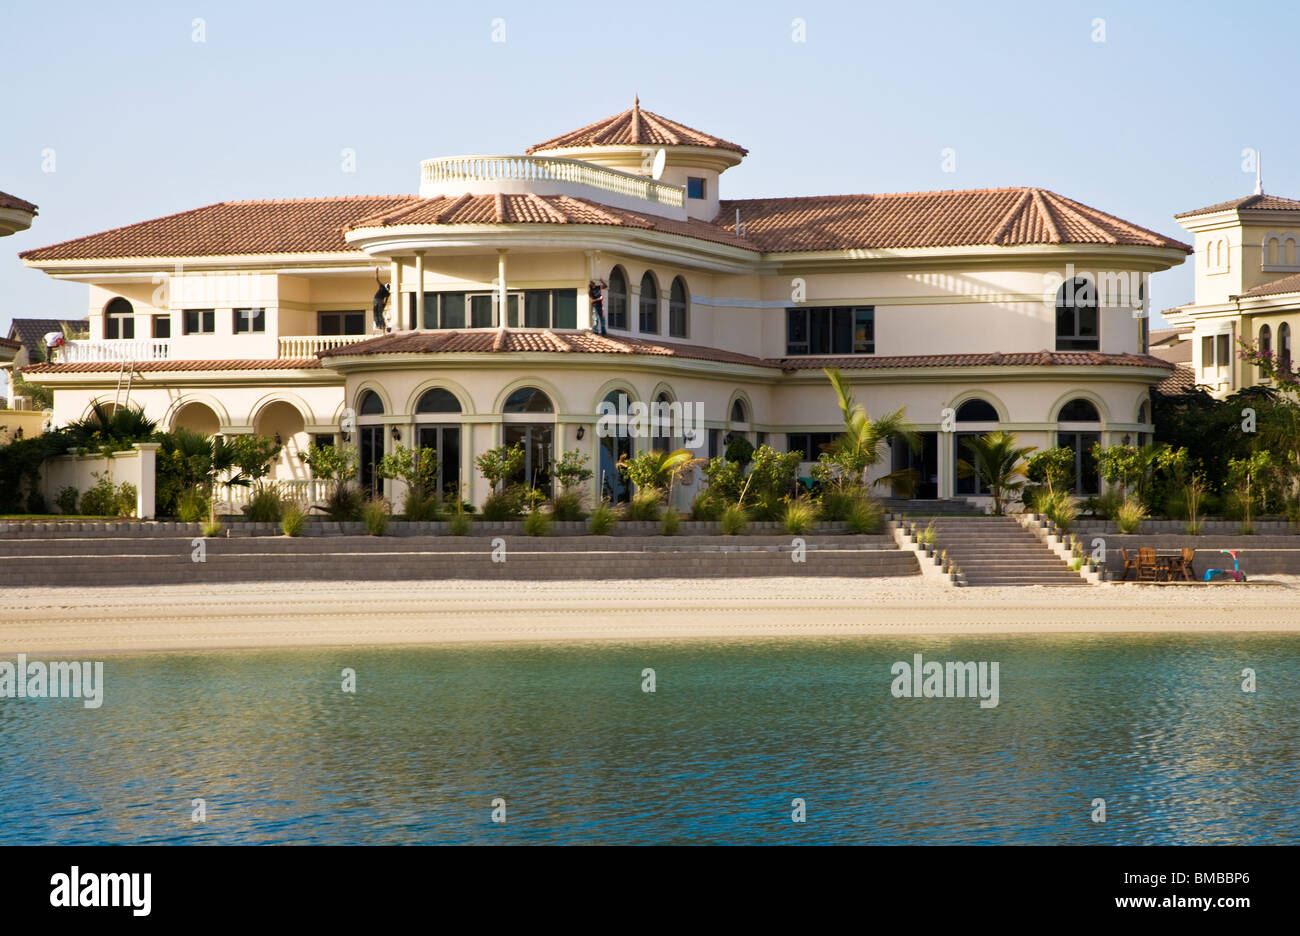 a grand villa along one of the fronds on the palm island jumeirah in stock photo 29754206 alamy. Black Bedroom Furniture Sets. Home Design Ideas